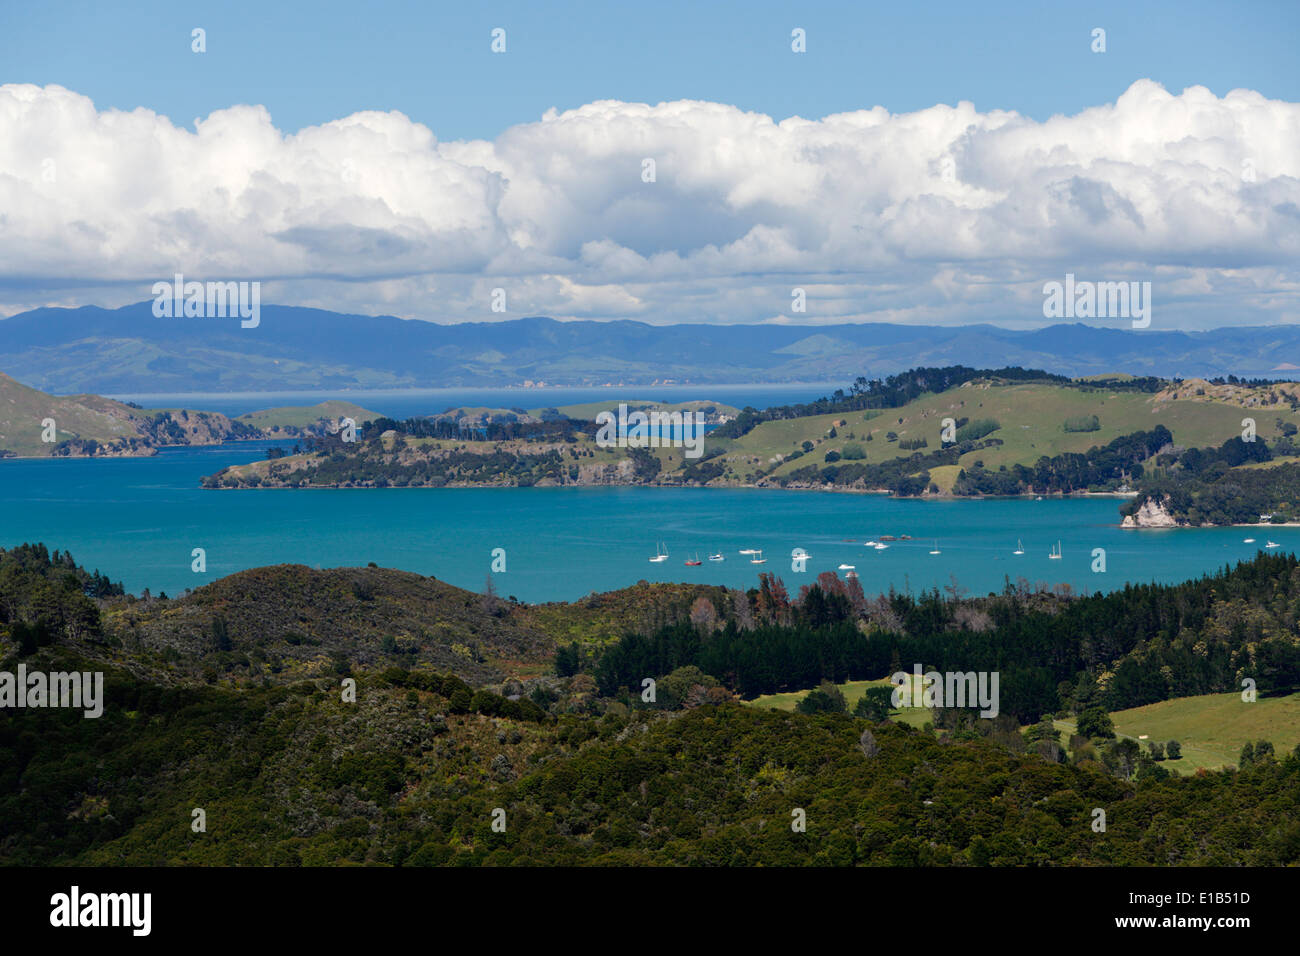 Driving Creek Railway (narrow gauge mountain railway). View over Hauraki Gulf from Eyefull Tower - Stock Image